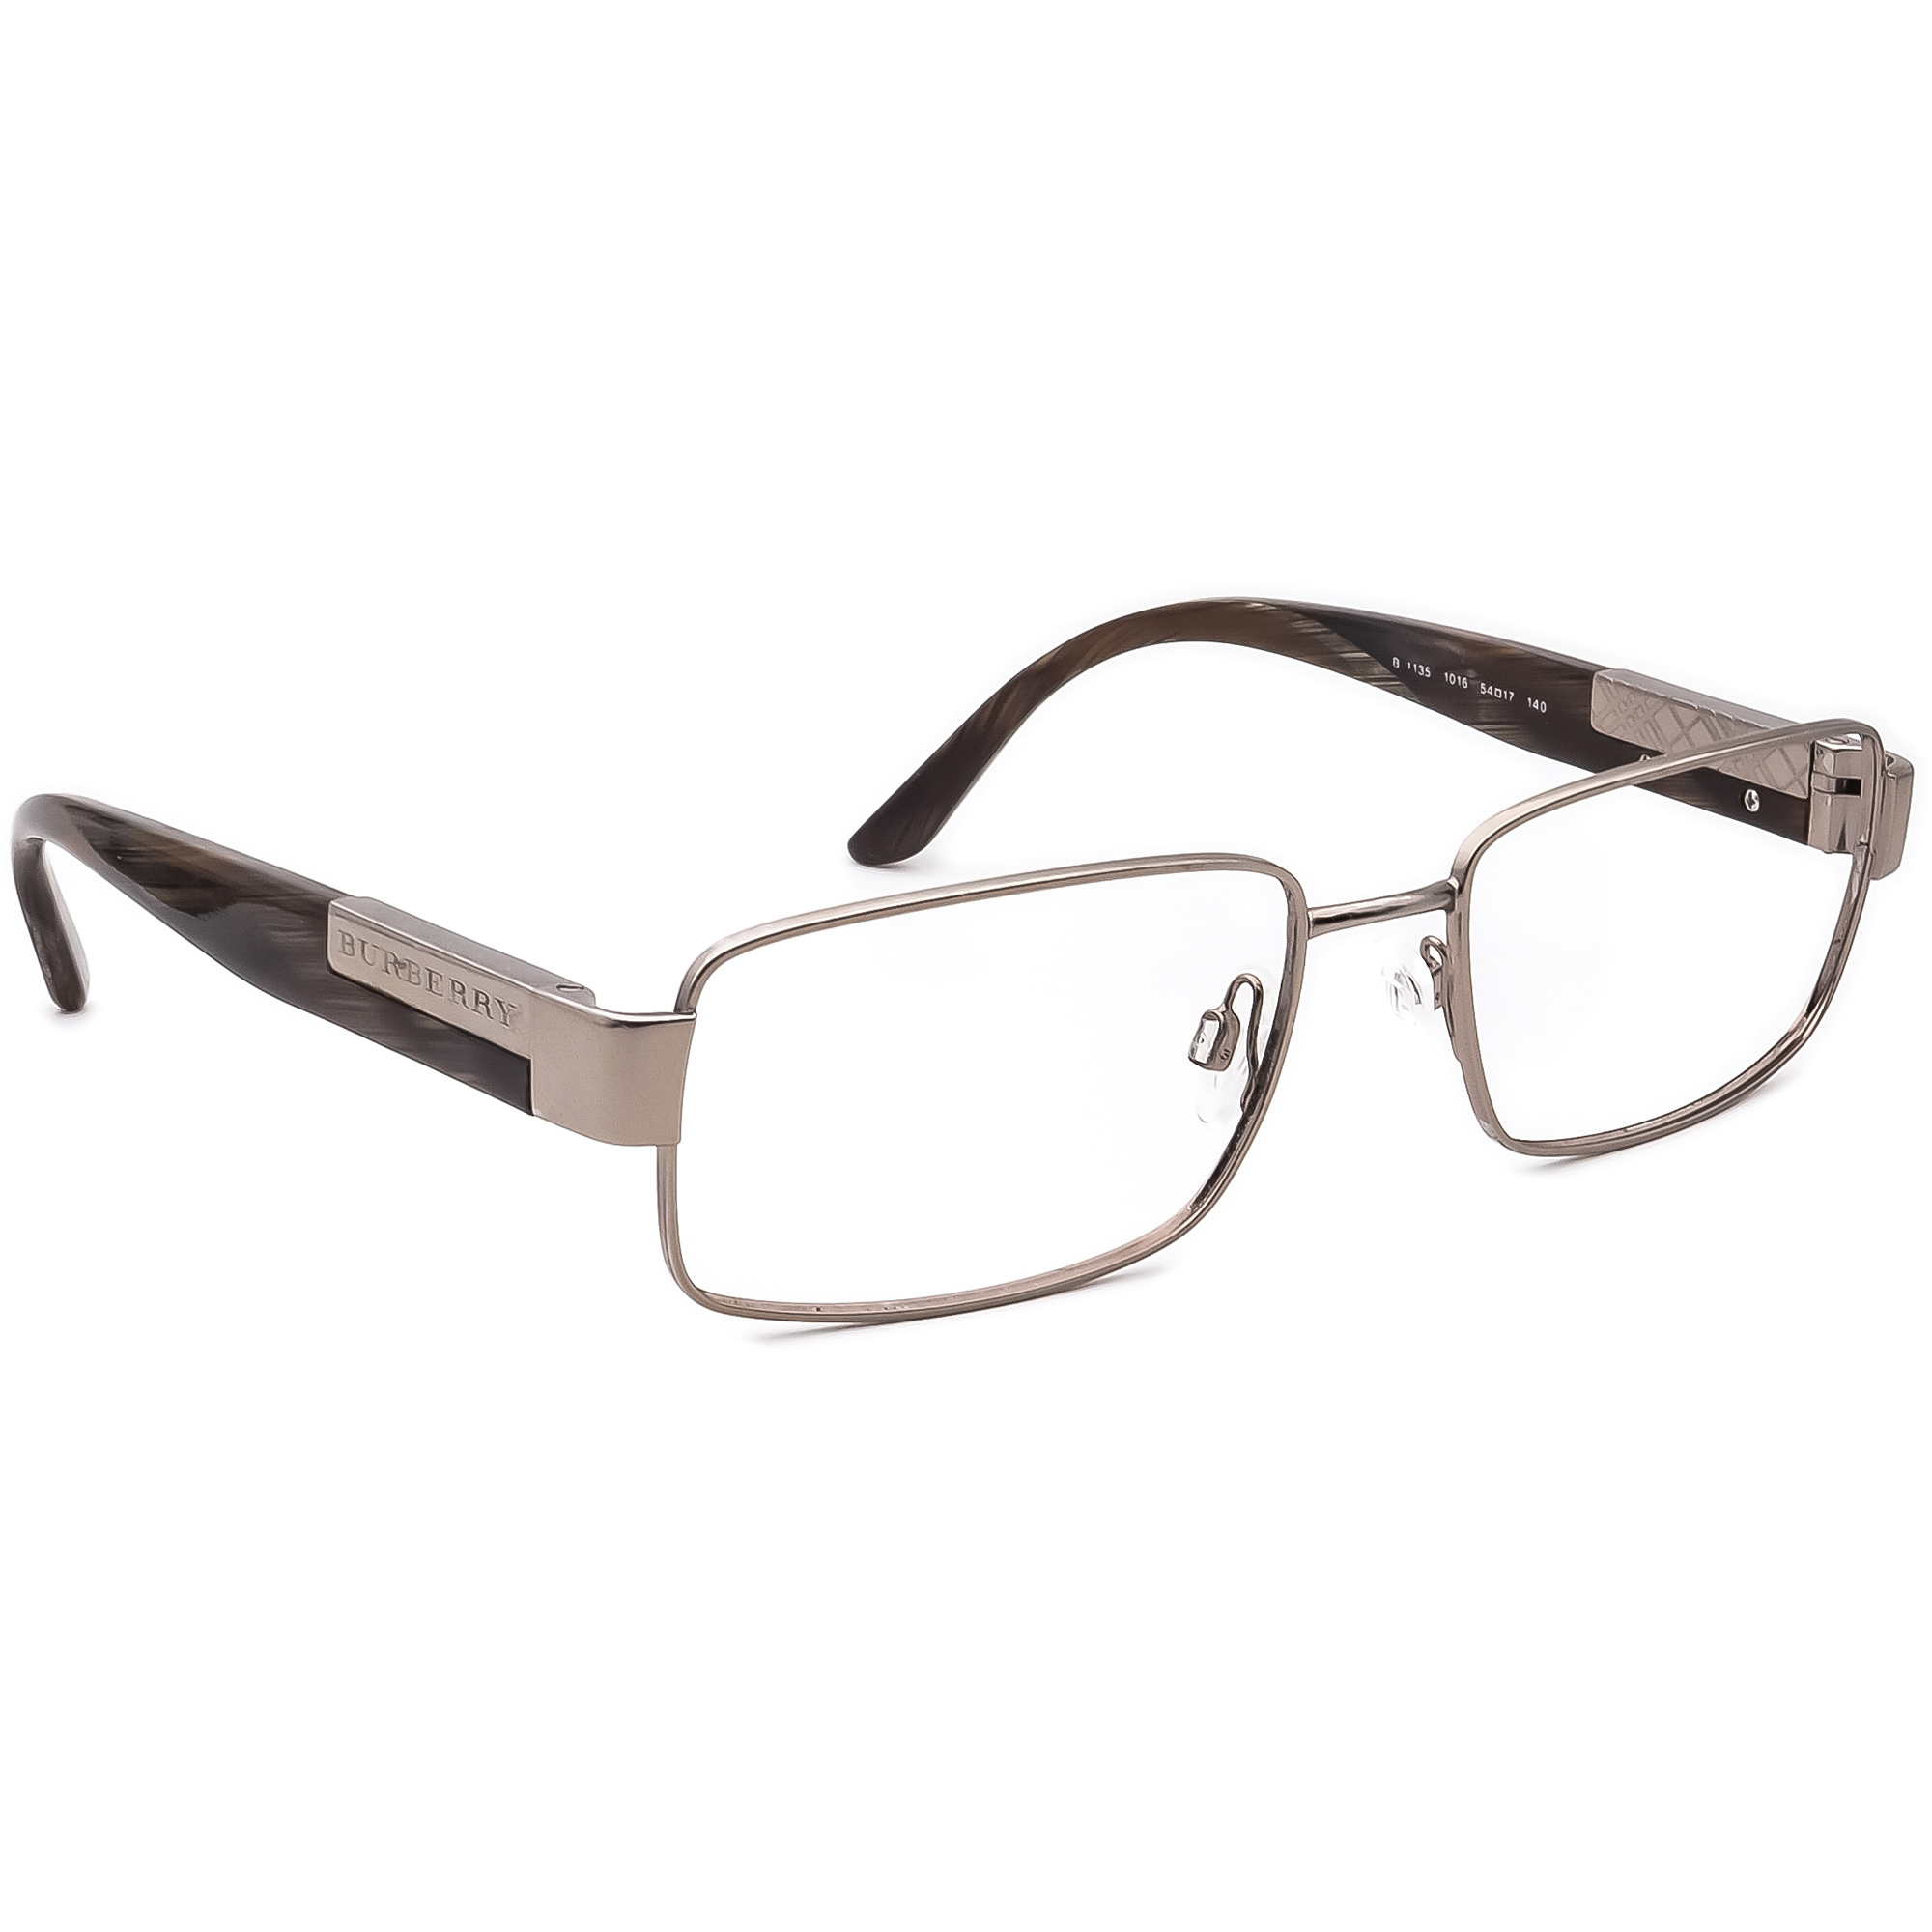 Burberry B 1135 1016 Eyeglasses